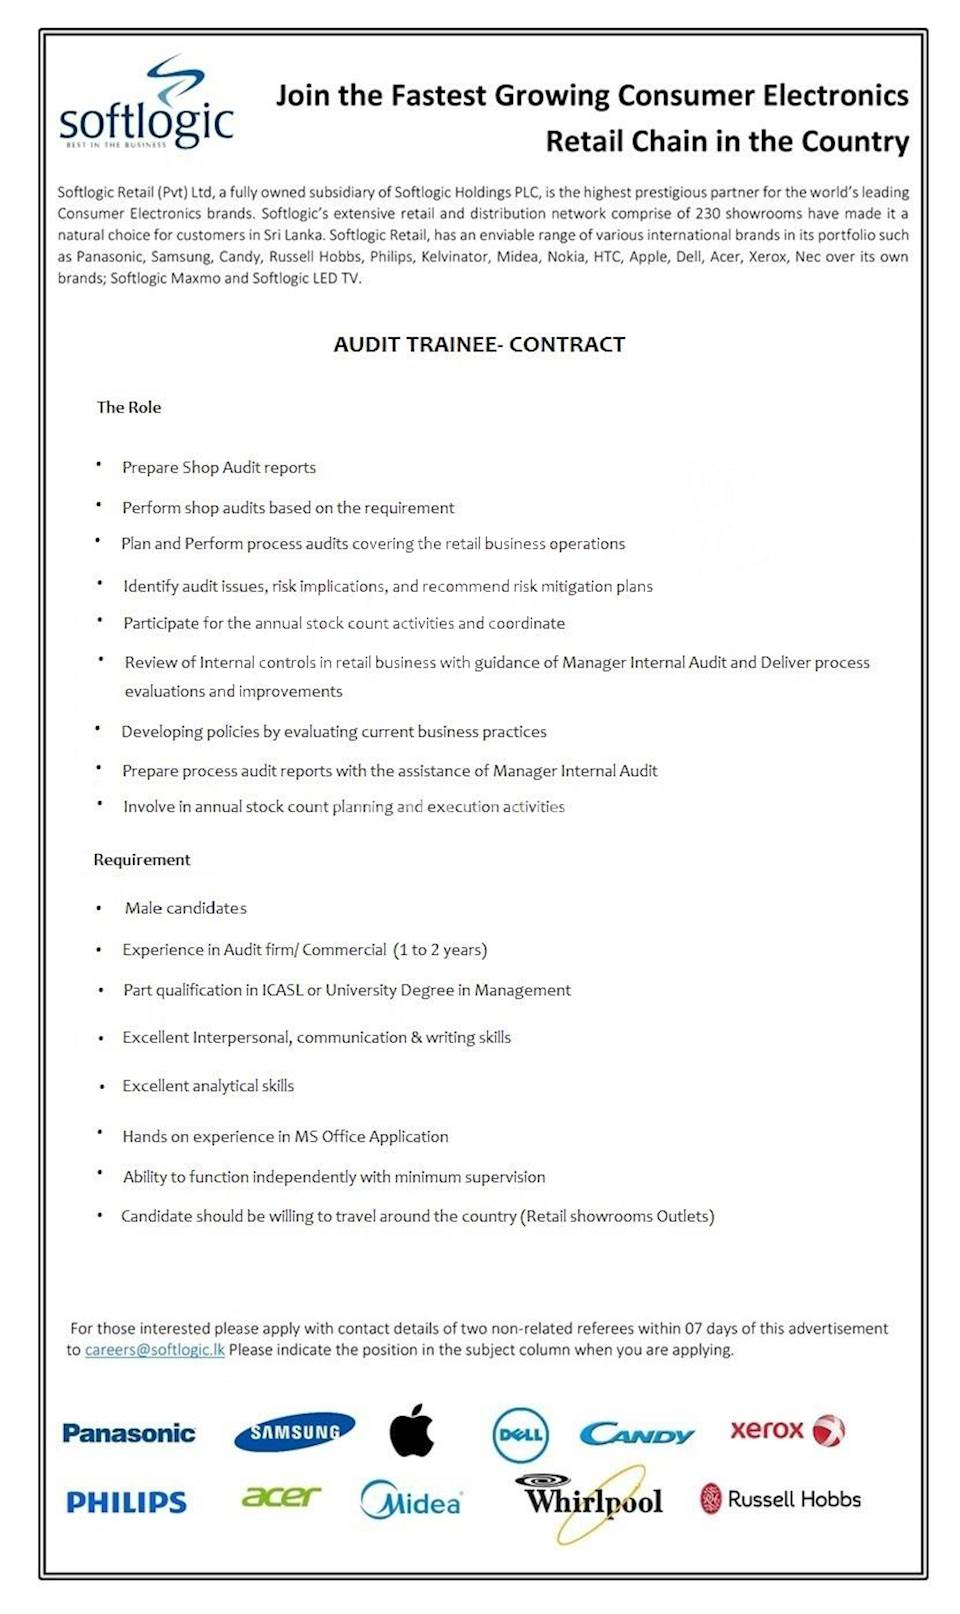 Audit Trainee - Contract